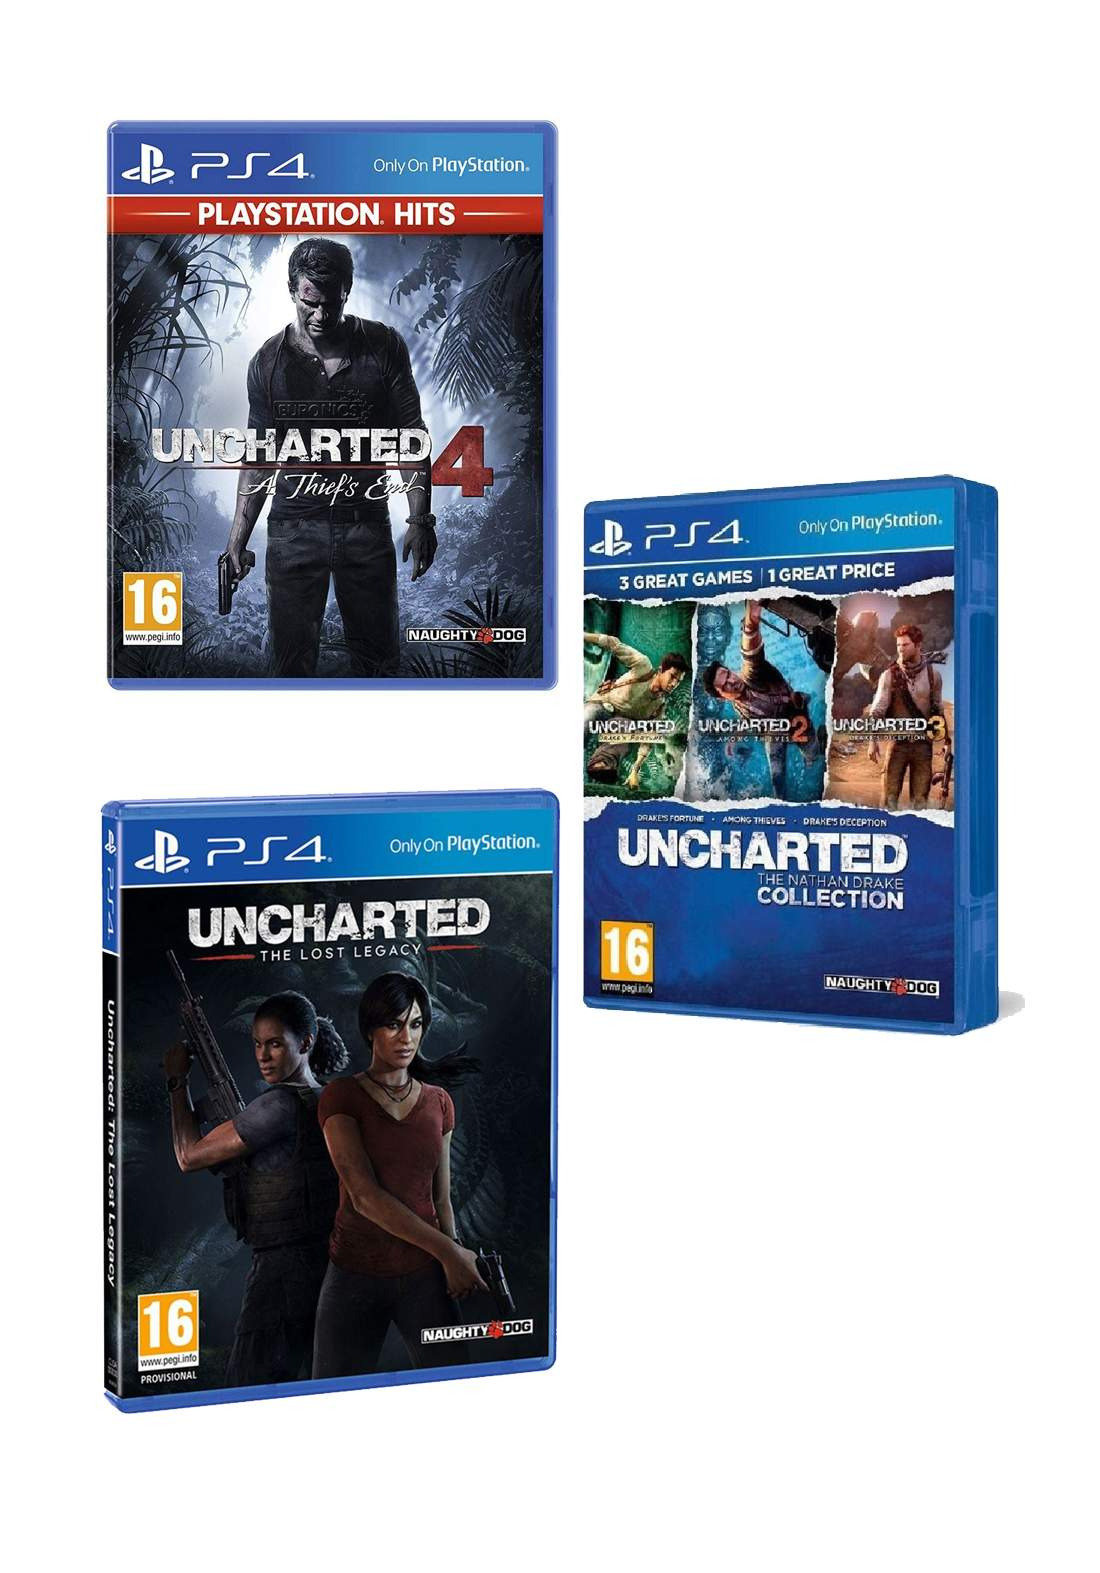 Set of UnchartedThe Lost Legacy Arabic Edition PS4 Game & Uncharted 4 PS4 Game Arabic & Uncharted The Nathan Drake Collection For SP4    بكج العاب بلاستيشن فور